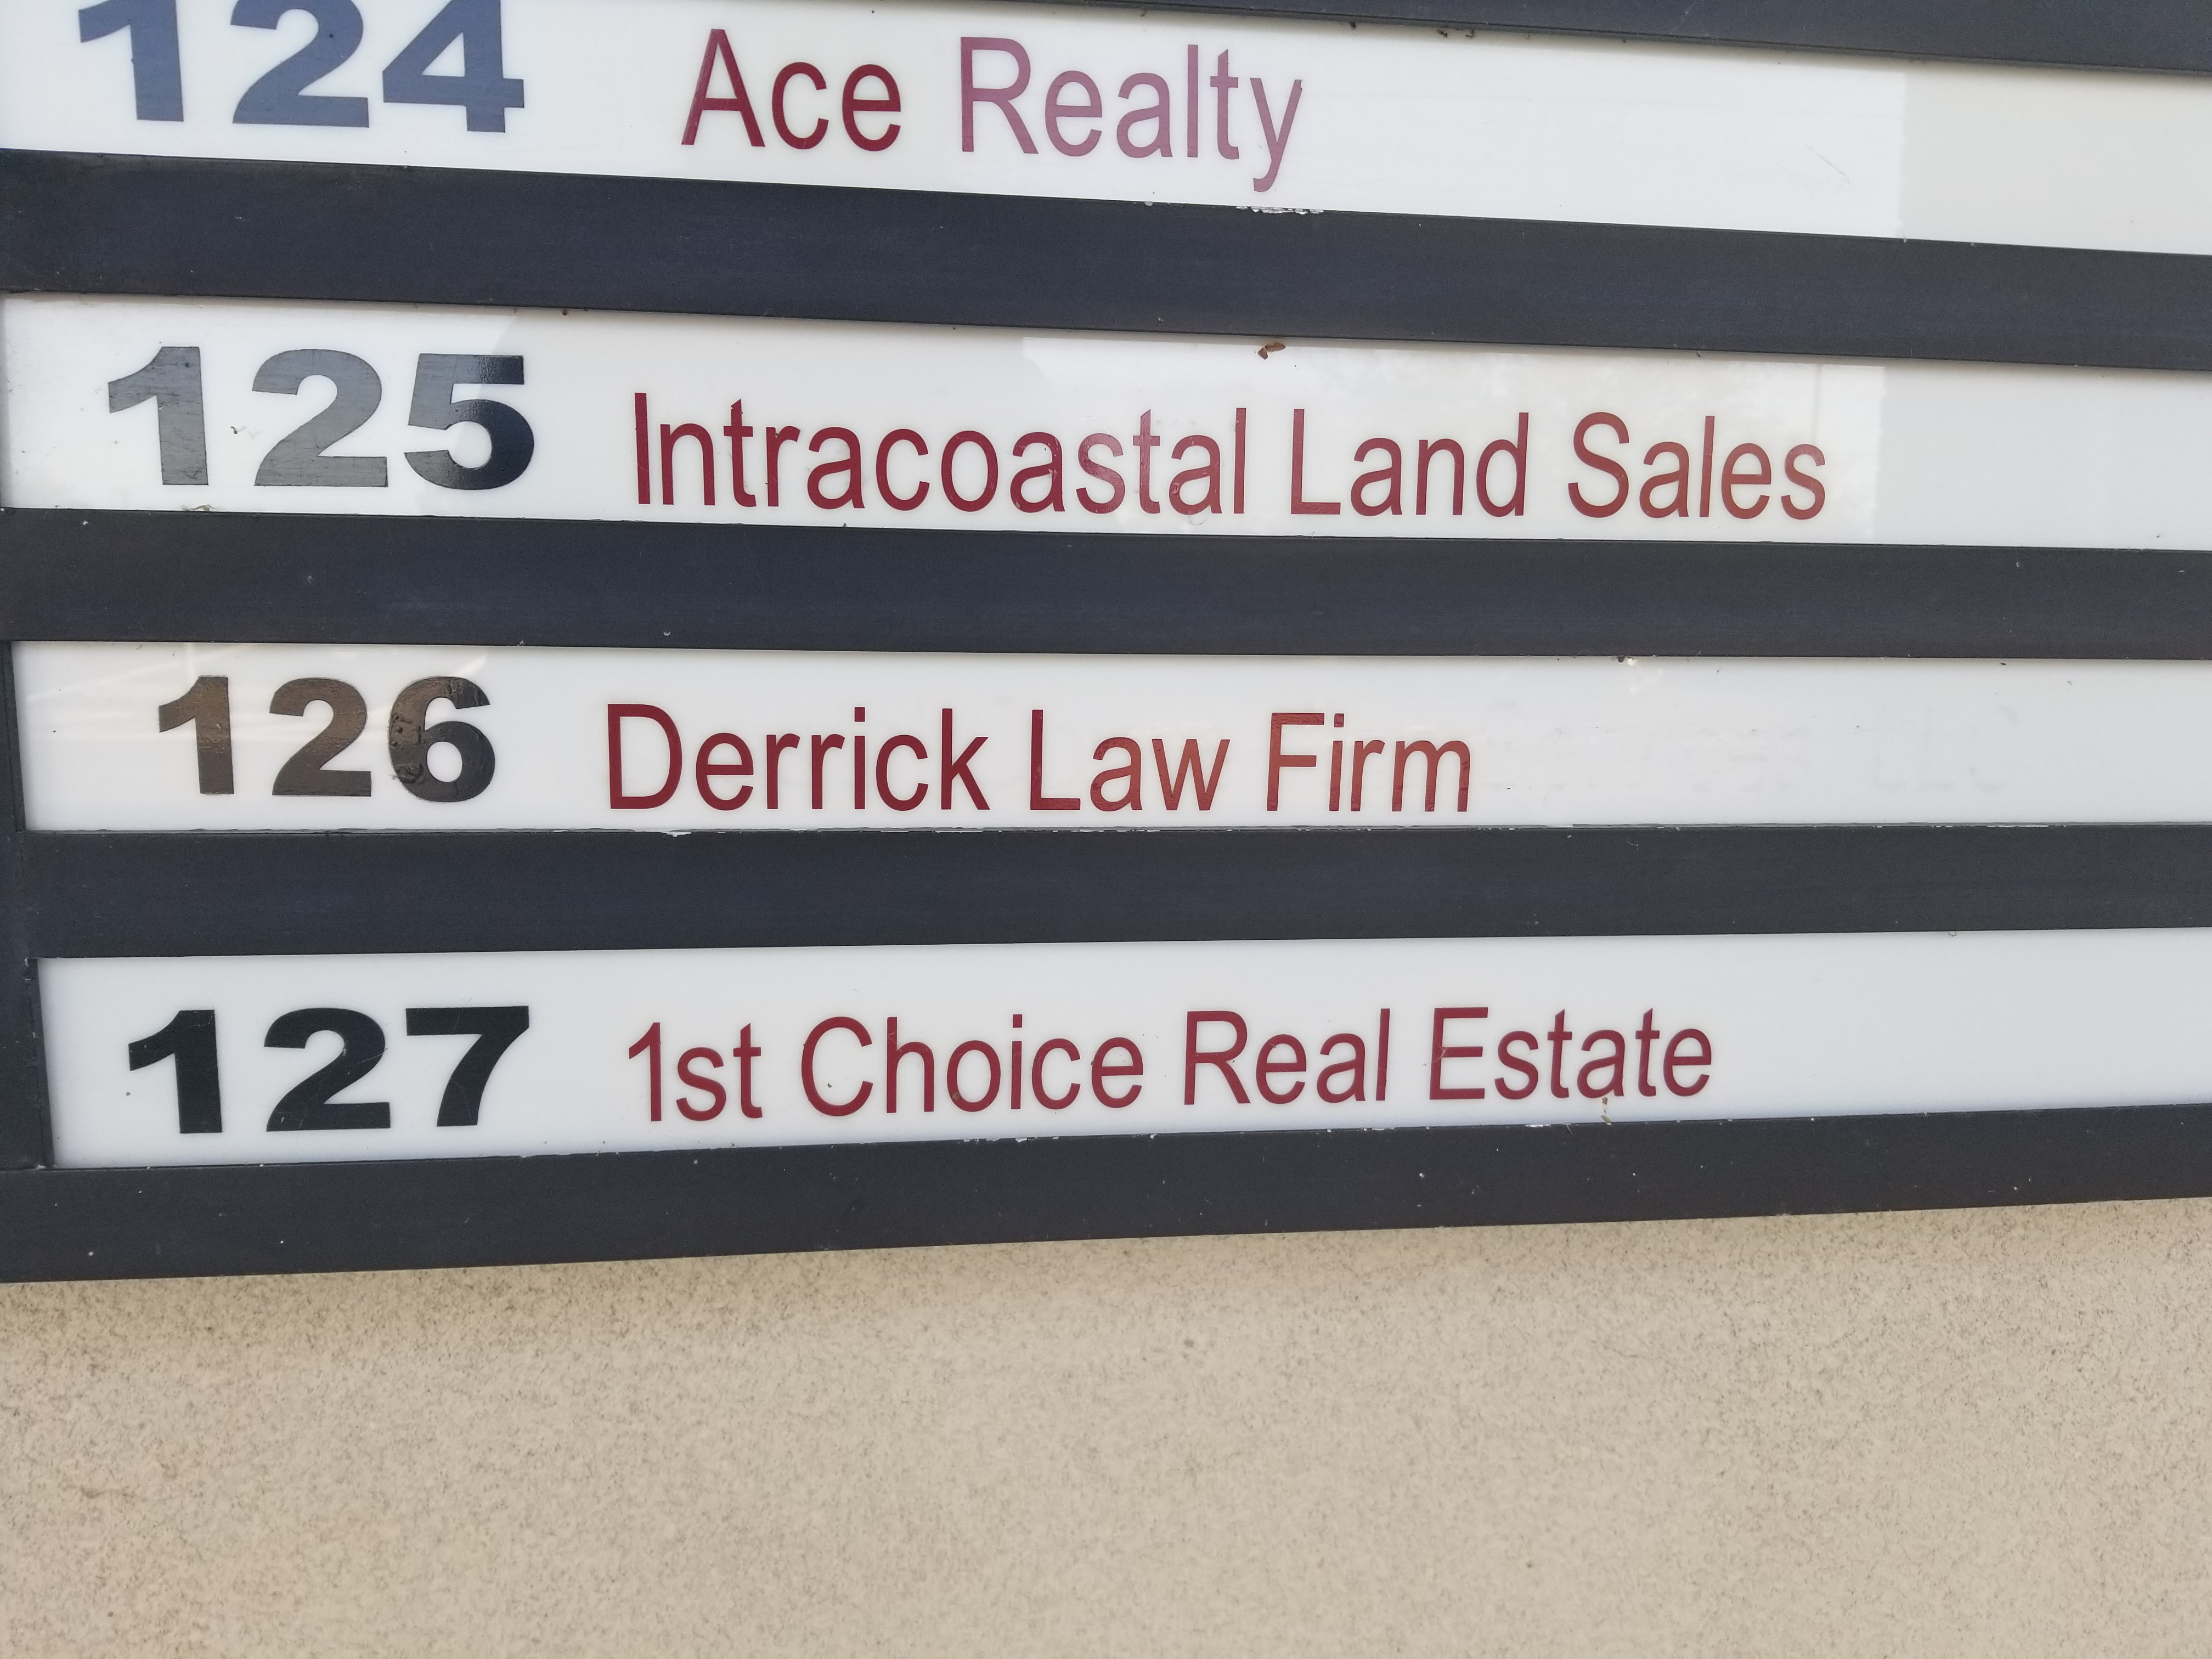 The Derrick Law Firm